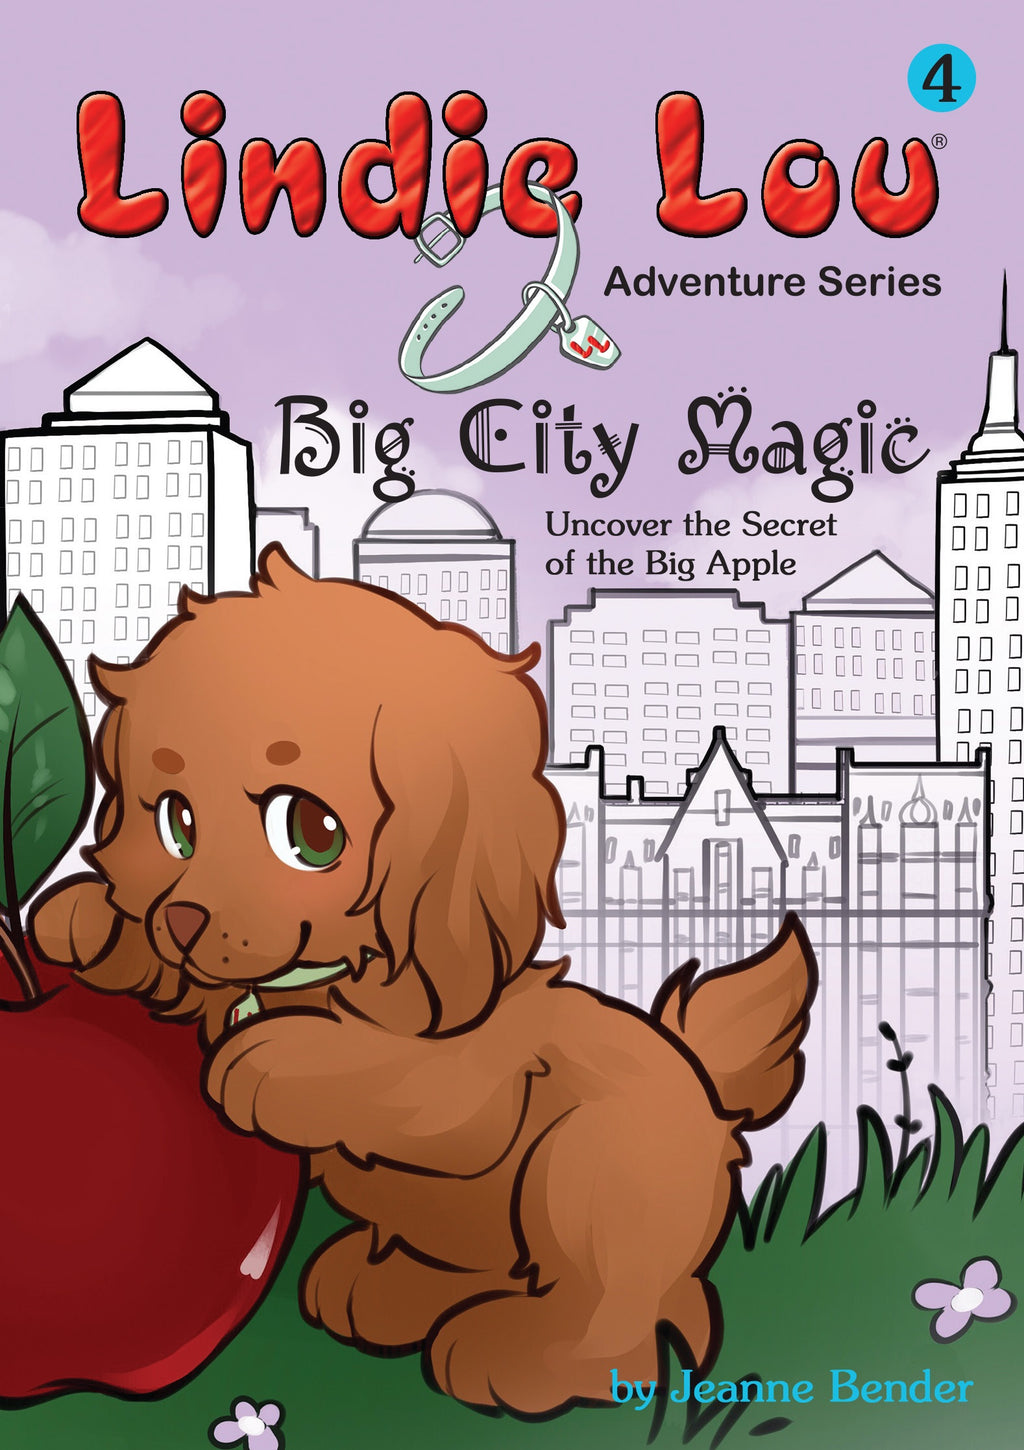 Big City Magic (HARDCOVER) - Lindie Lou Adventure Series Book 4